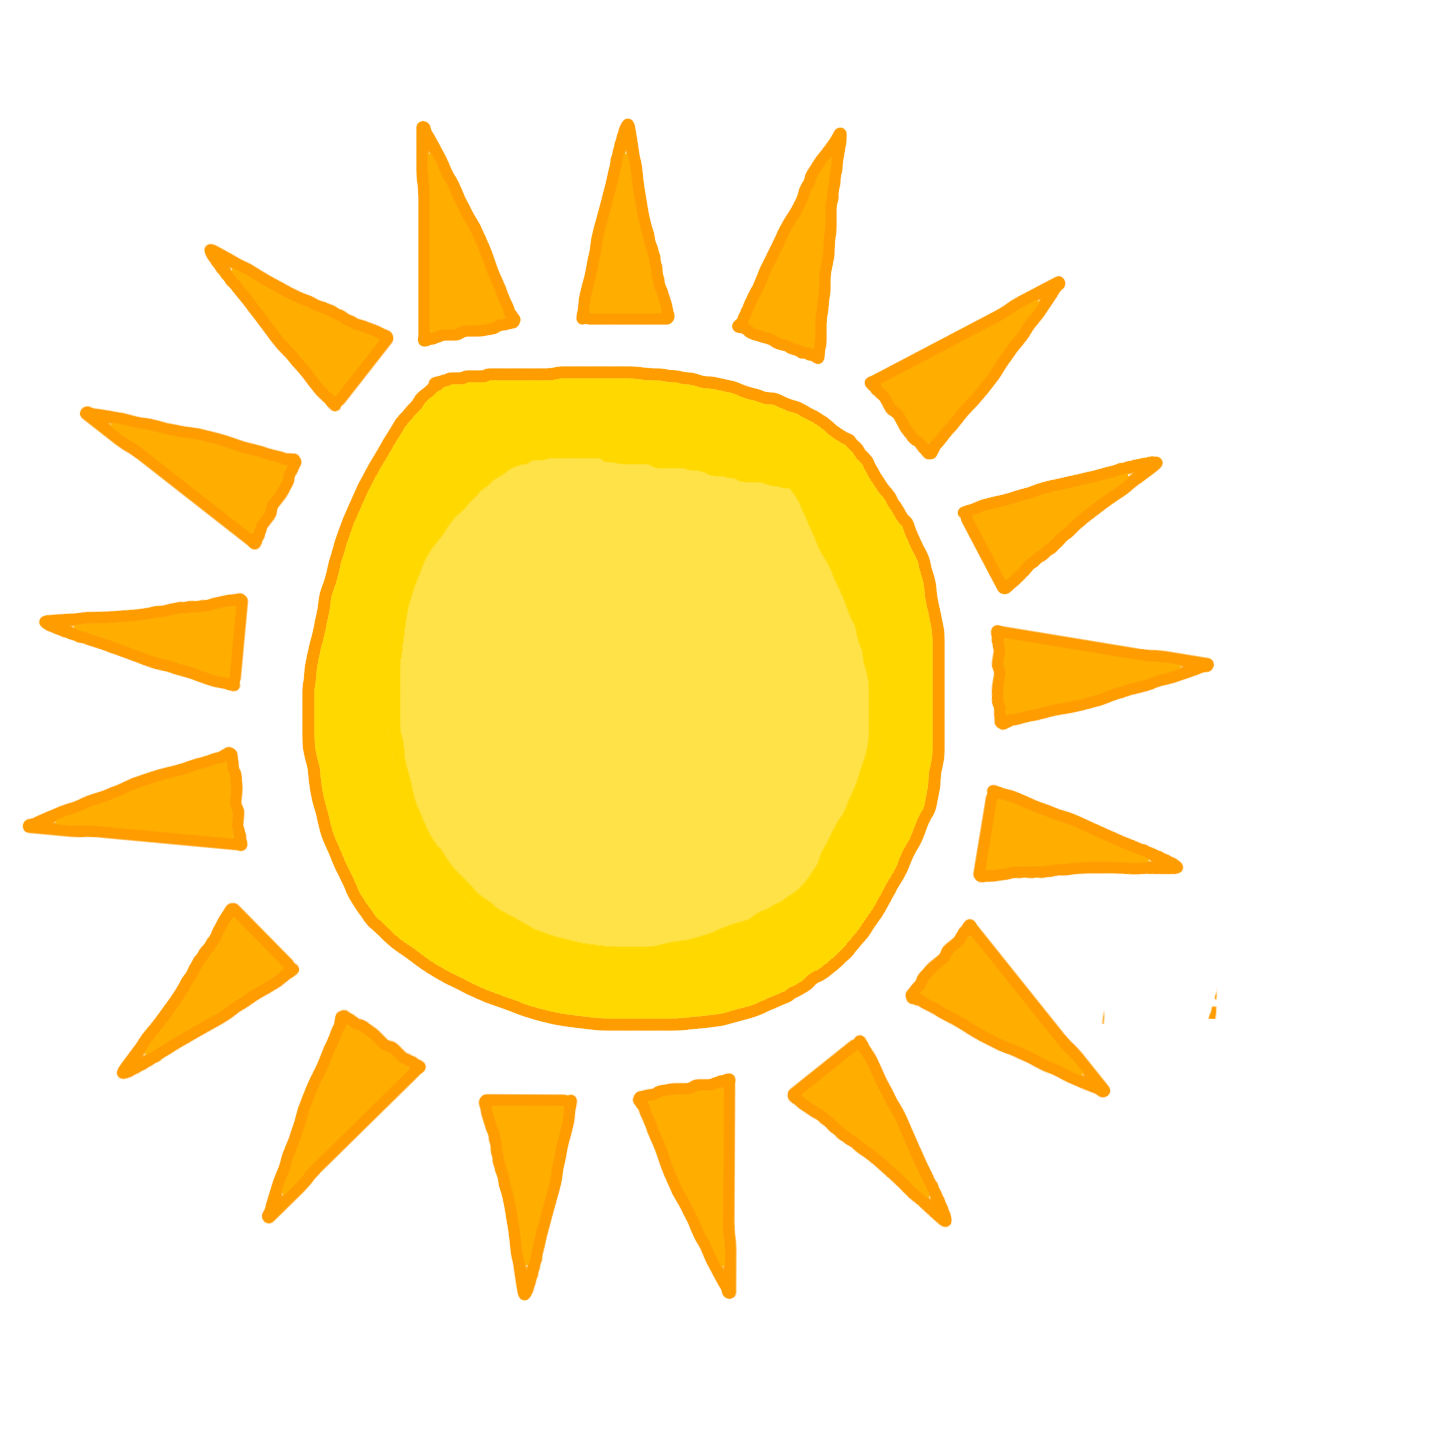 Sunny clipart background. Happy sun png no